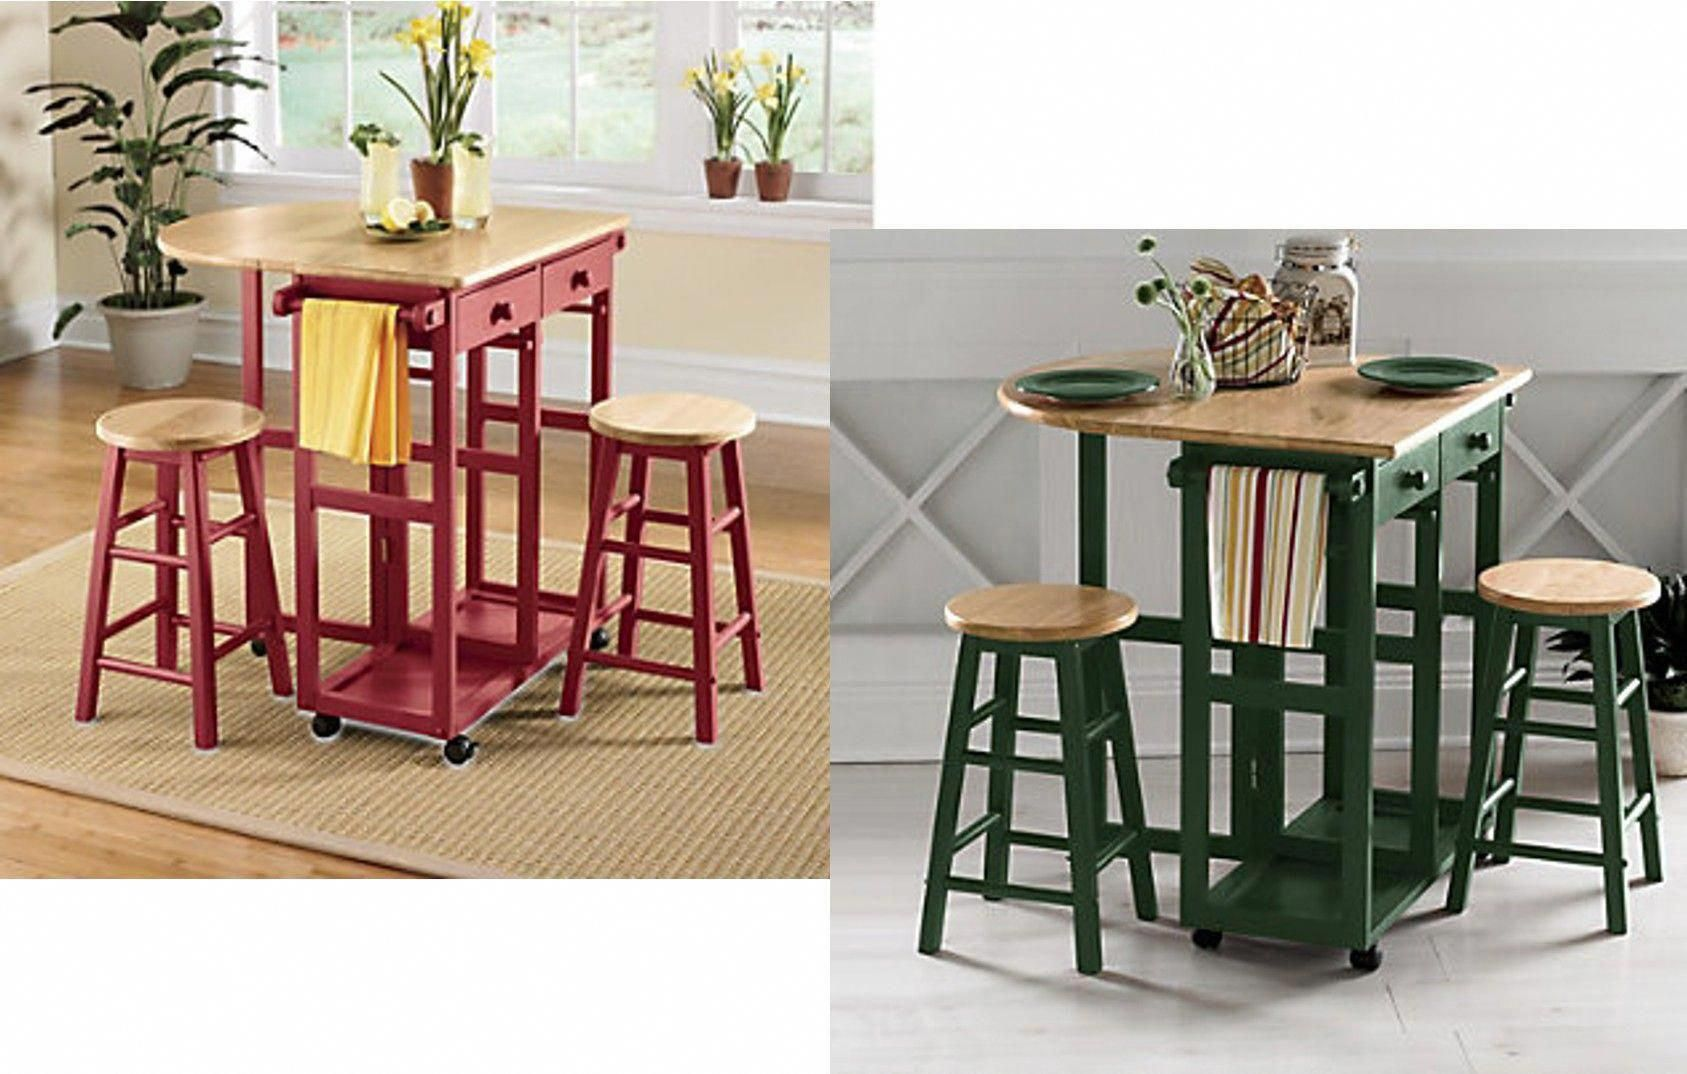 Love These Breakfast Bars With Drop Leaf Extension Versatile Movable Storable Use As A Kitchen Island Informal Bar Home Bar Decor Decor Home Bar Areas